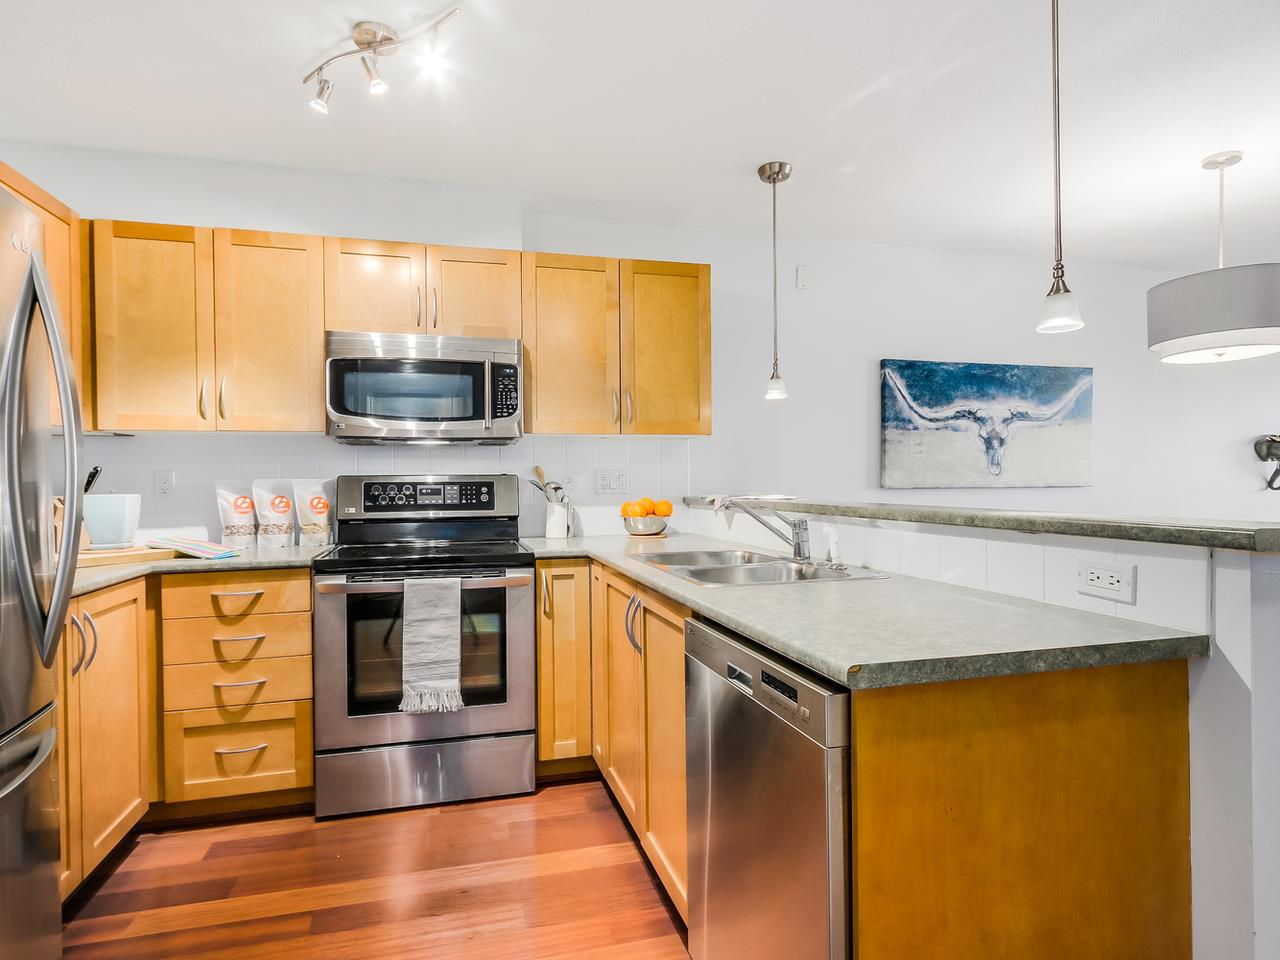 Photo 11: 109 333 E 1ST STREET in North Vancouver: Lower Lonsdale Condo for sale : MLS® # R2032321